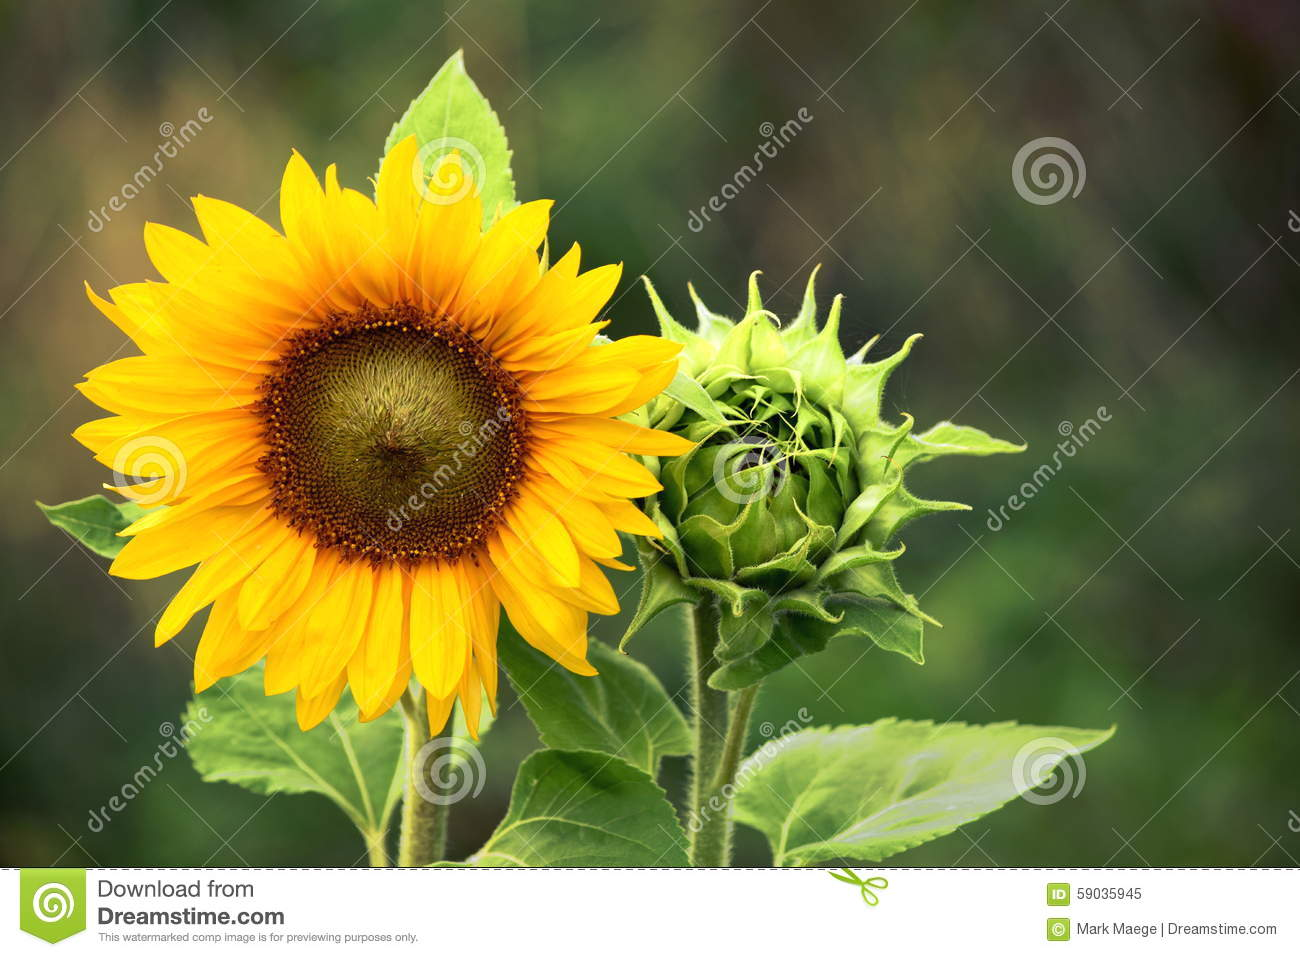 Organic Farming Gardening Sunflower with Green Bud Sunflower Blossom - Healthy Lifestyles Ecology